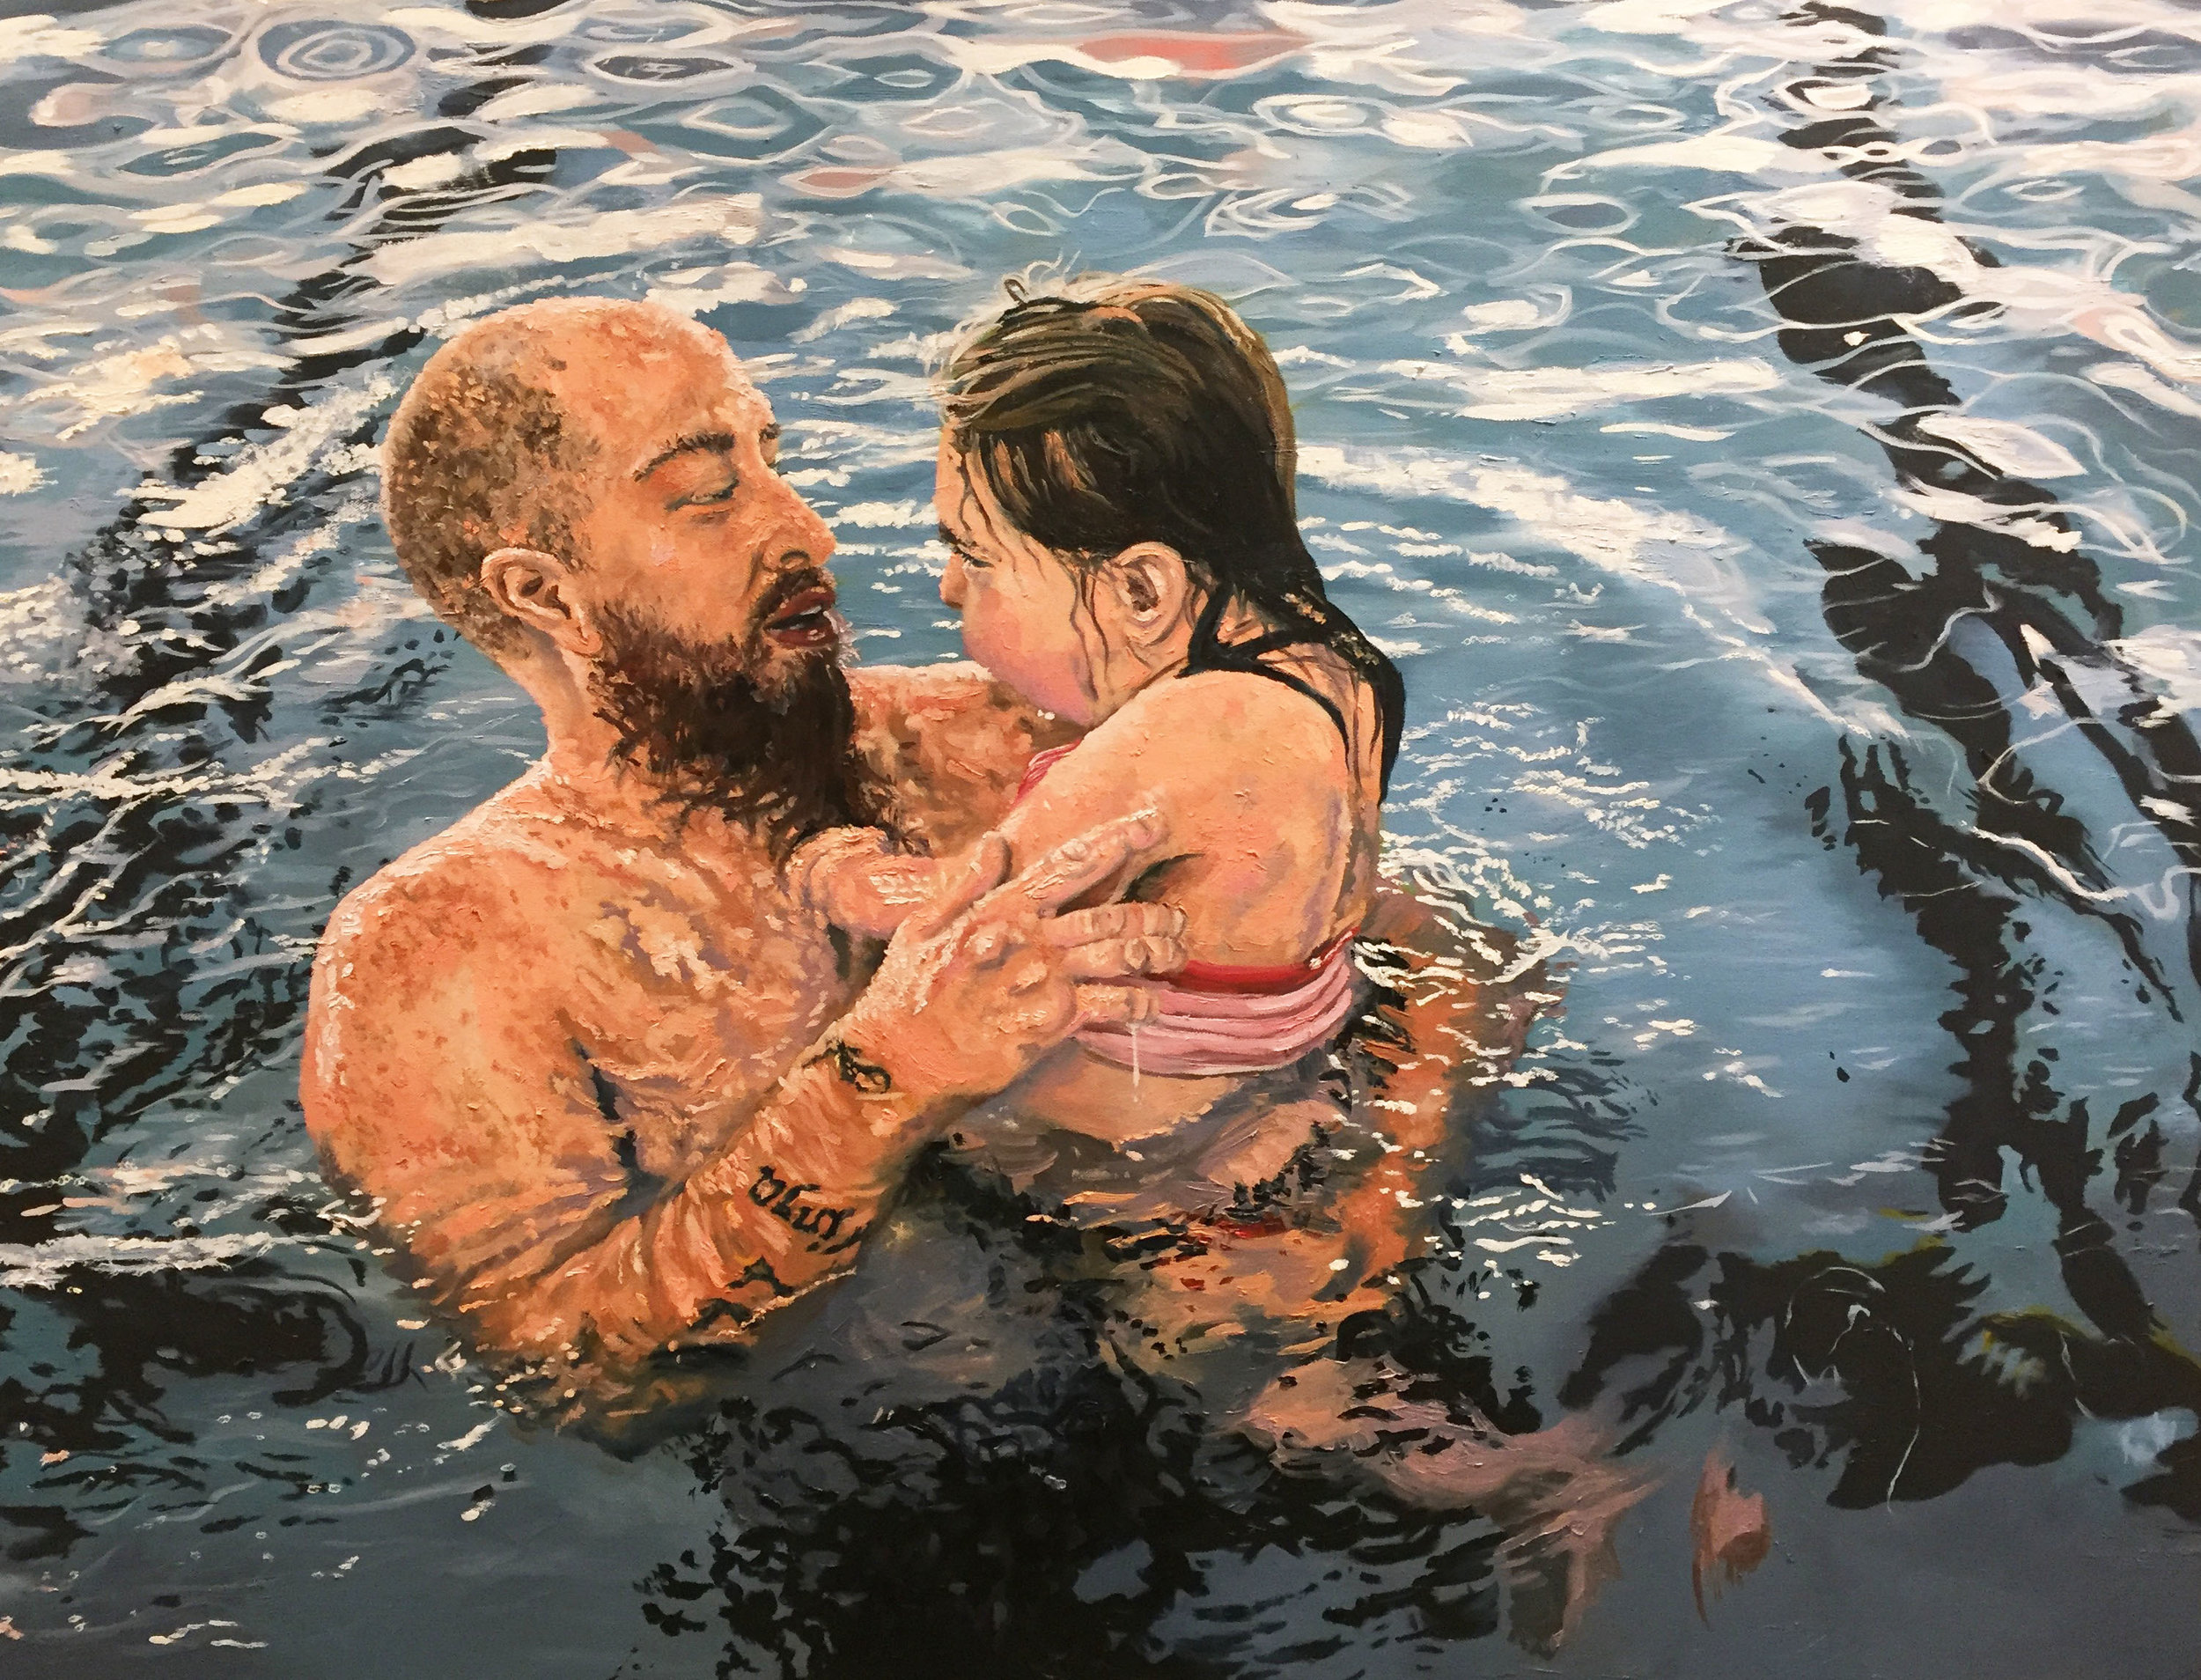 SWIMMING LESSONS, oil on canvas, 36' x 48 inches, 2016